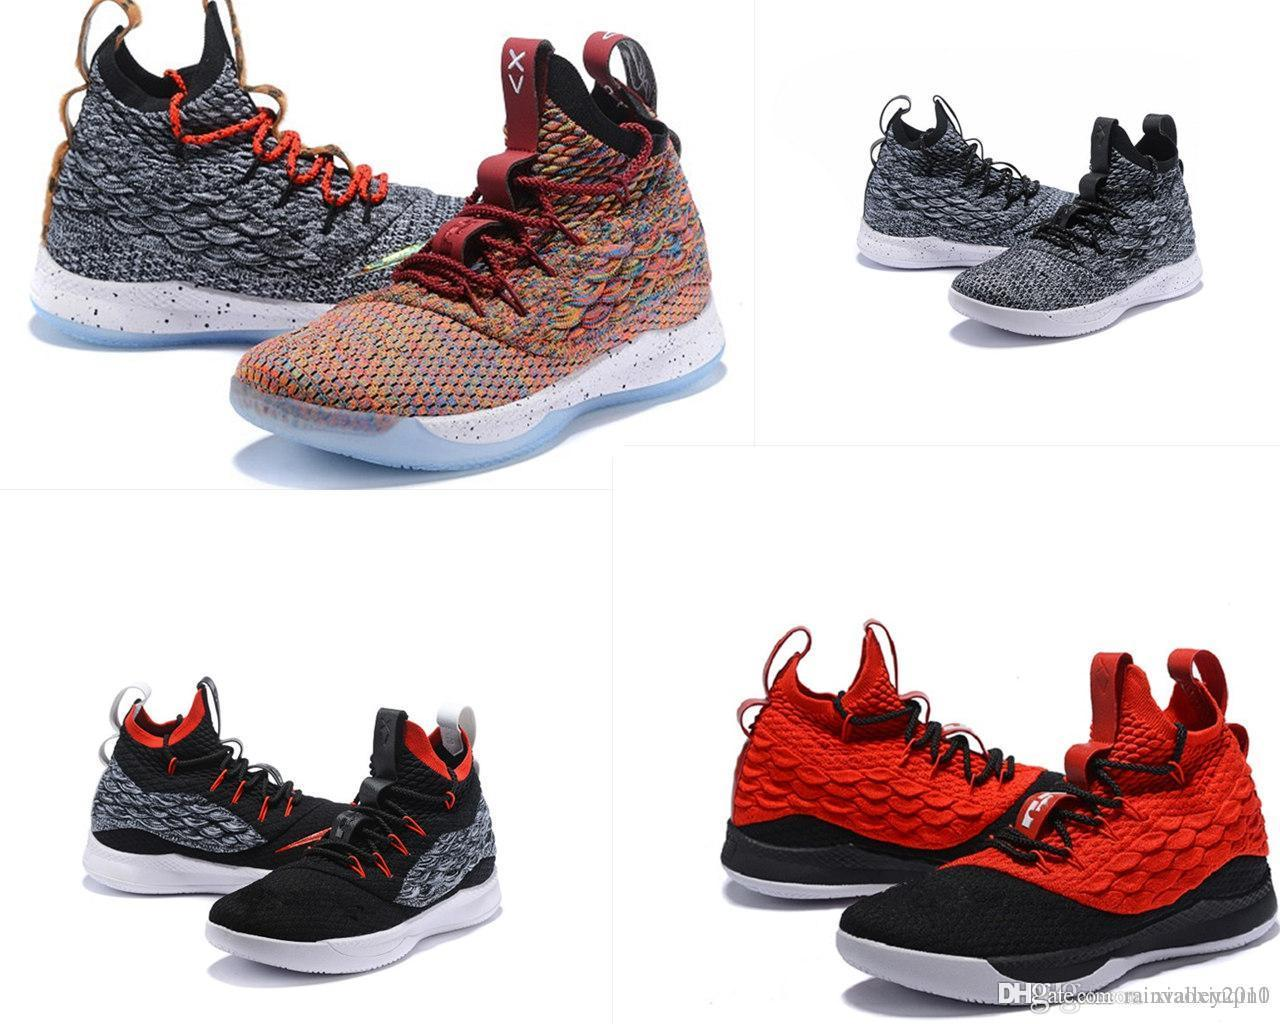 e85ed2ea1340 2019 What The Lebron Witness 3 High Mens Basketball Shoes For Sale MVP  Christmas BHM Oreo Youth Kids 16 Sneakers With Box Size 7 12 From  Rainvalley2010